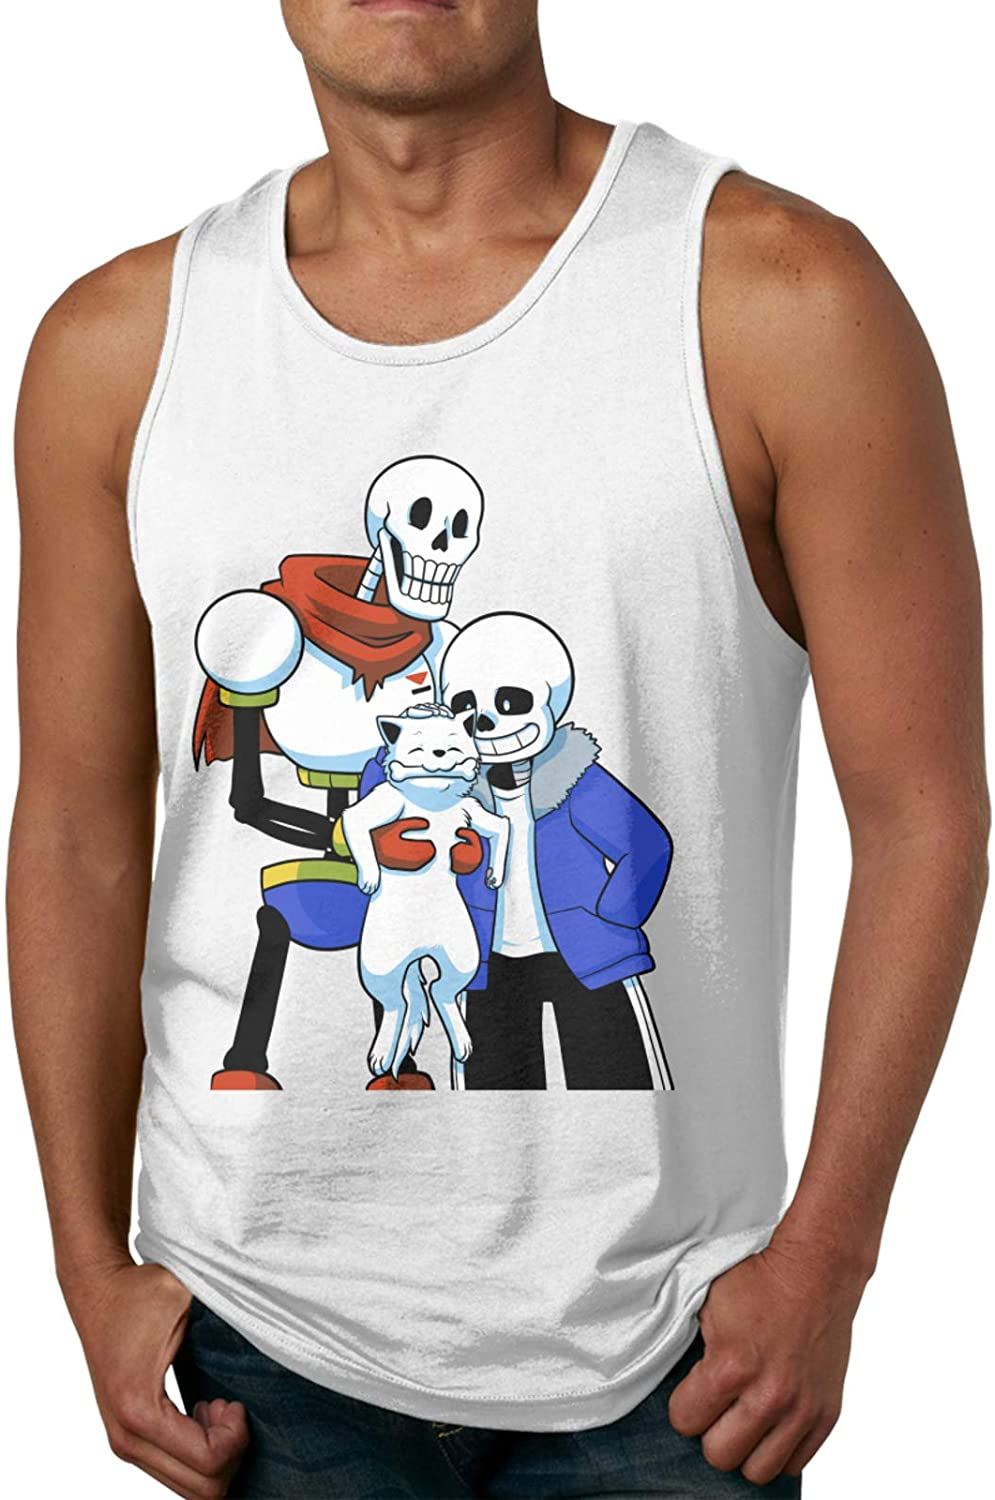 Mens Undertale San and Papyrus Graphic Summer Sleeveless Tank Tops Vest Shirts for Casual Workout Holiday